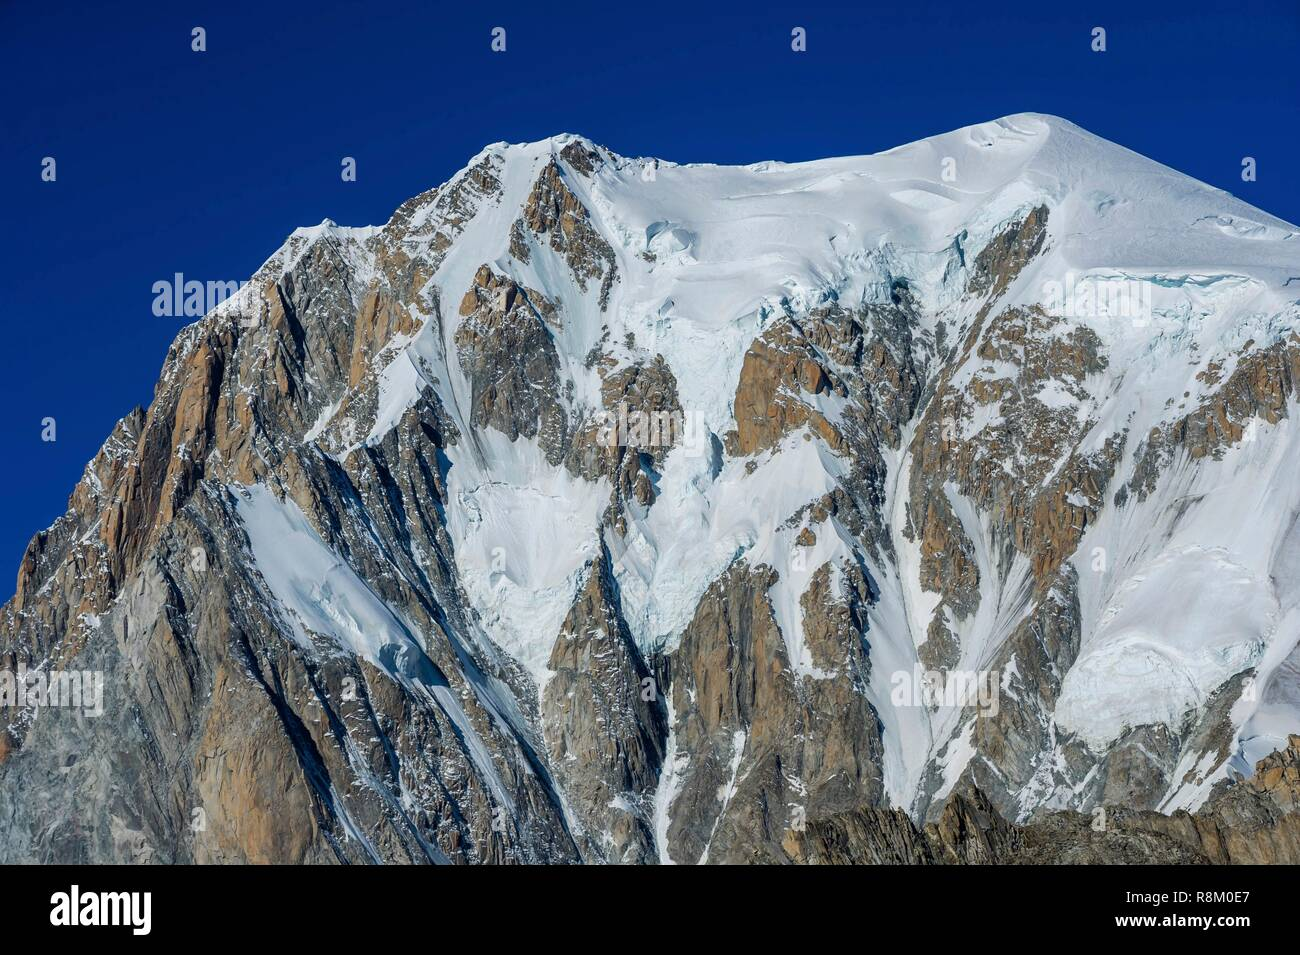 Italy, Val d'Aoste, Courmayeur, italian side of Mont-Blanc, from the Pointe Helbronner - Stock Image